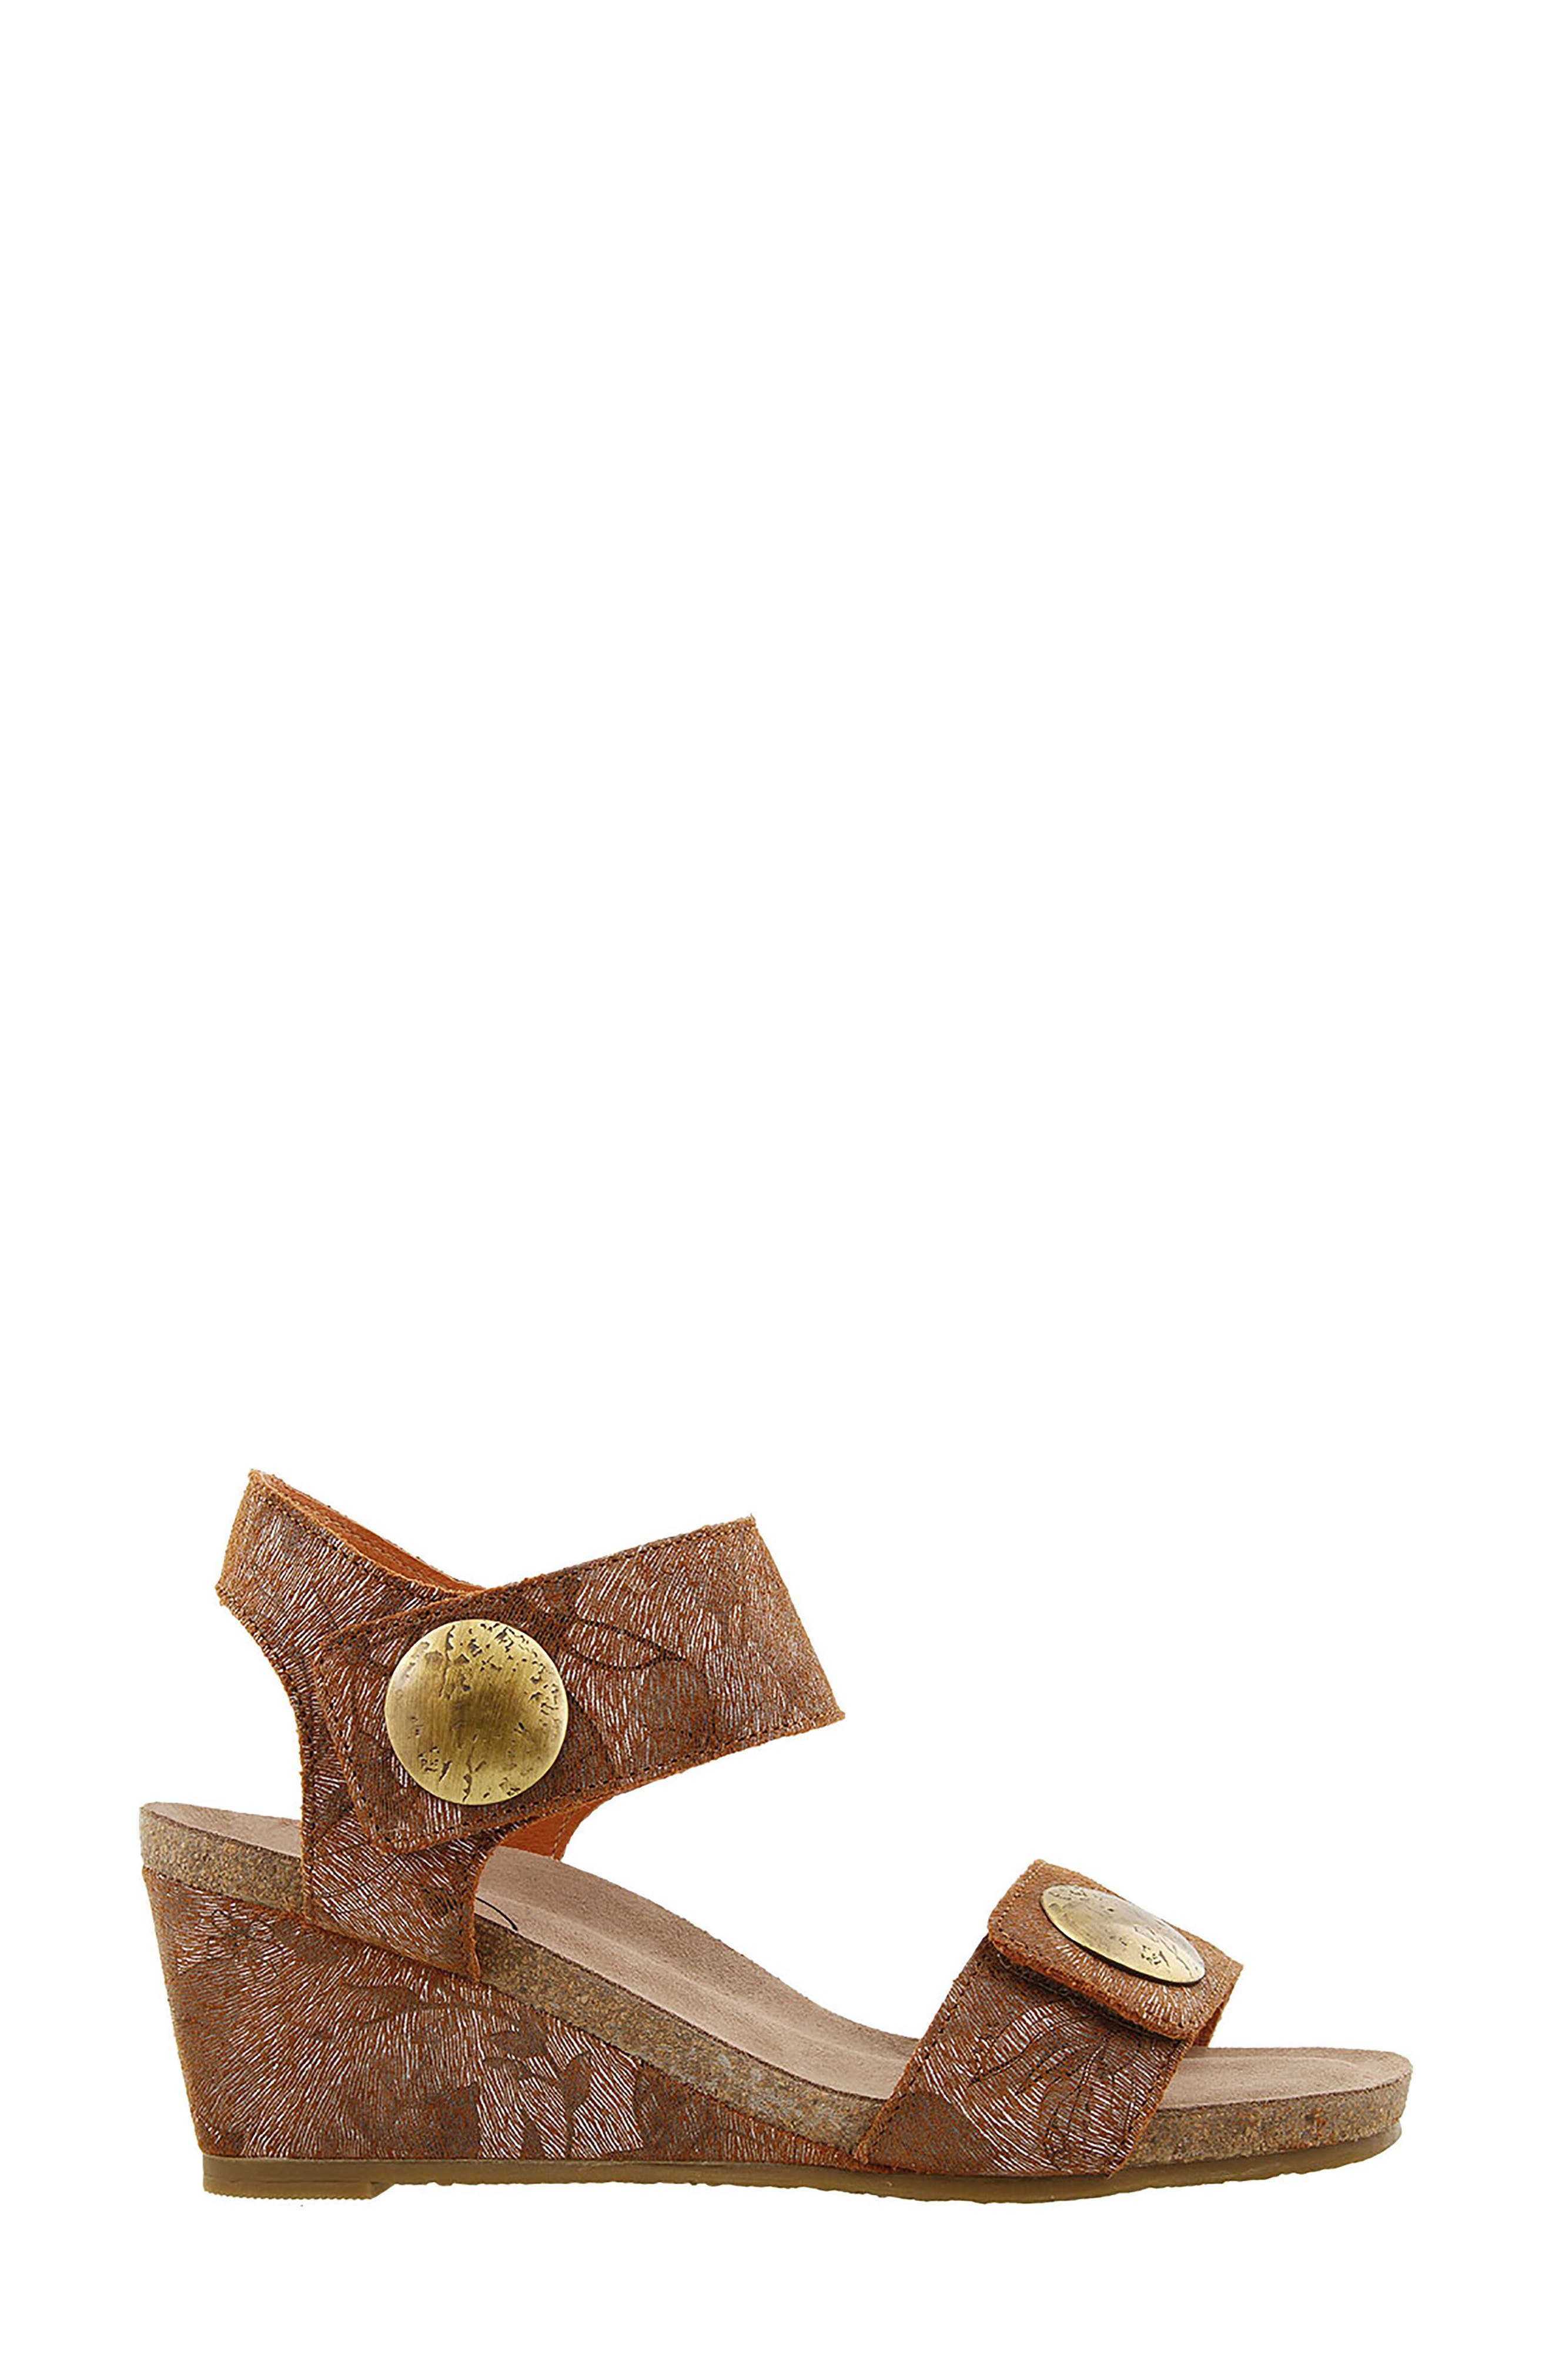 Alternate Image 3  - Taos 'Carousel 2' Wedge Sandal (Women)